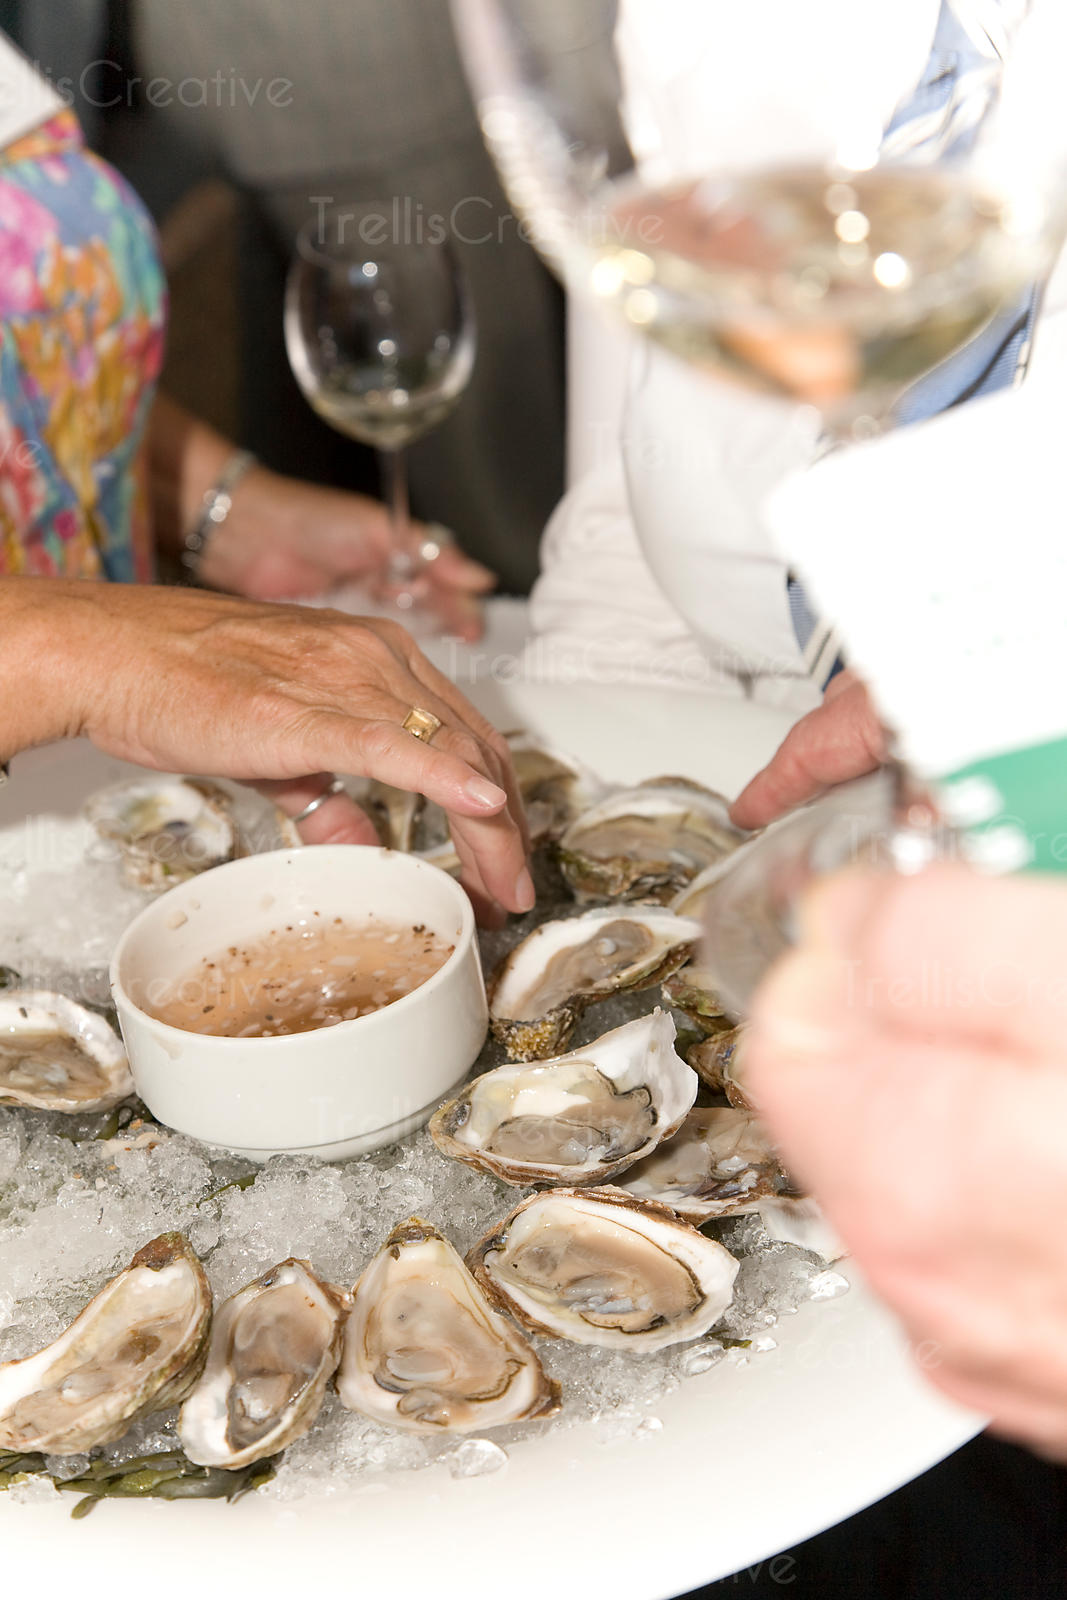 Guests enjoy eating a platter of oysters